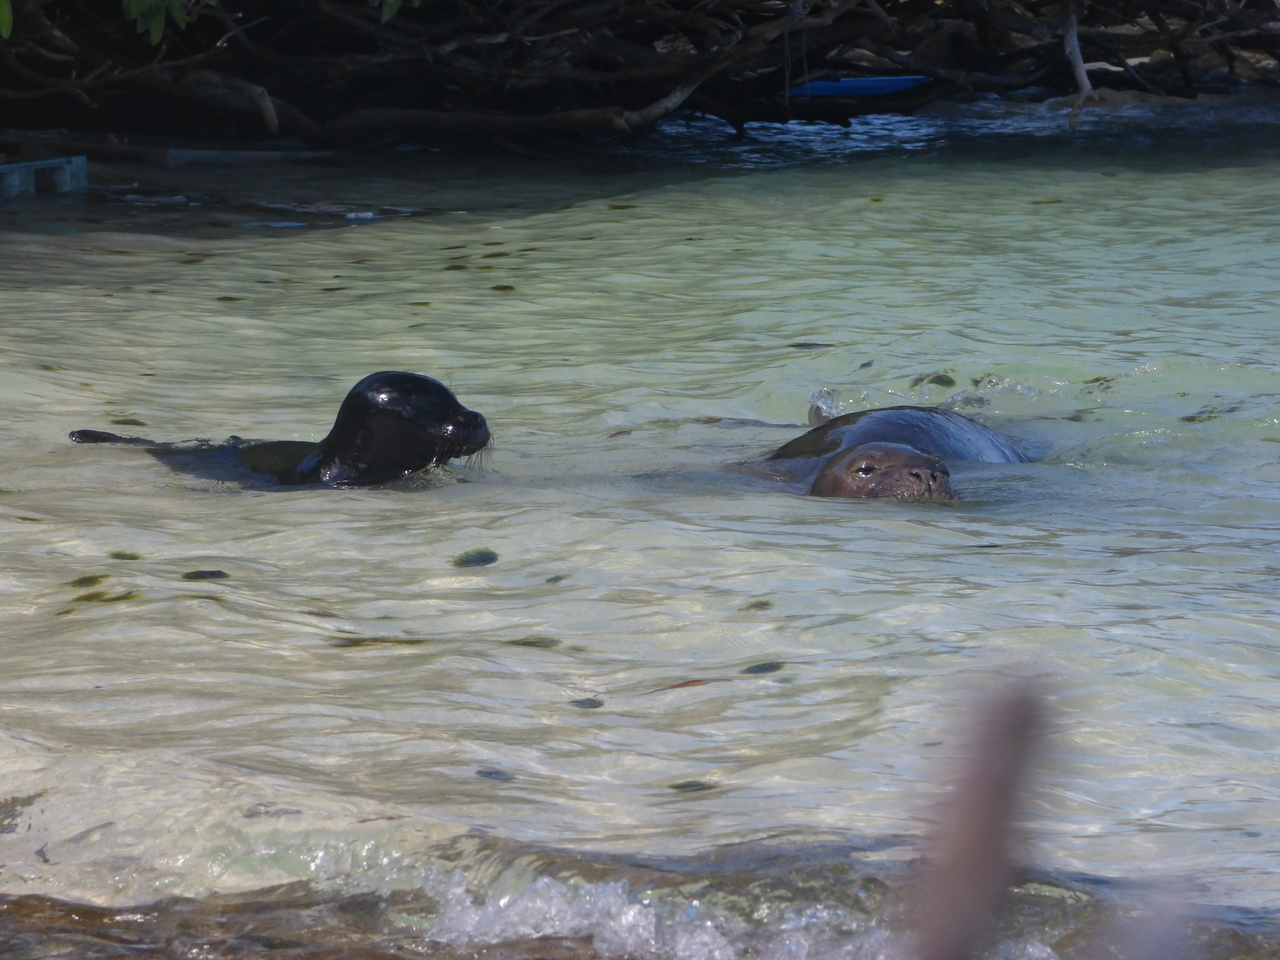 TG28 swimming with pup.